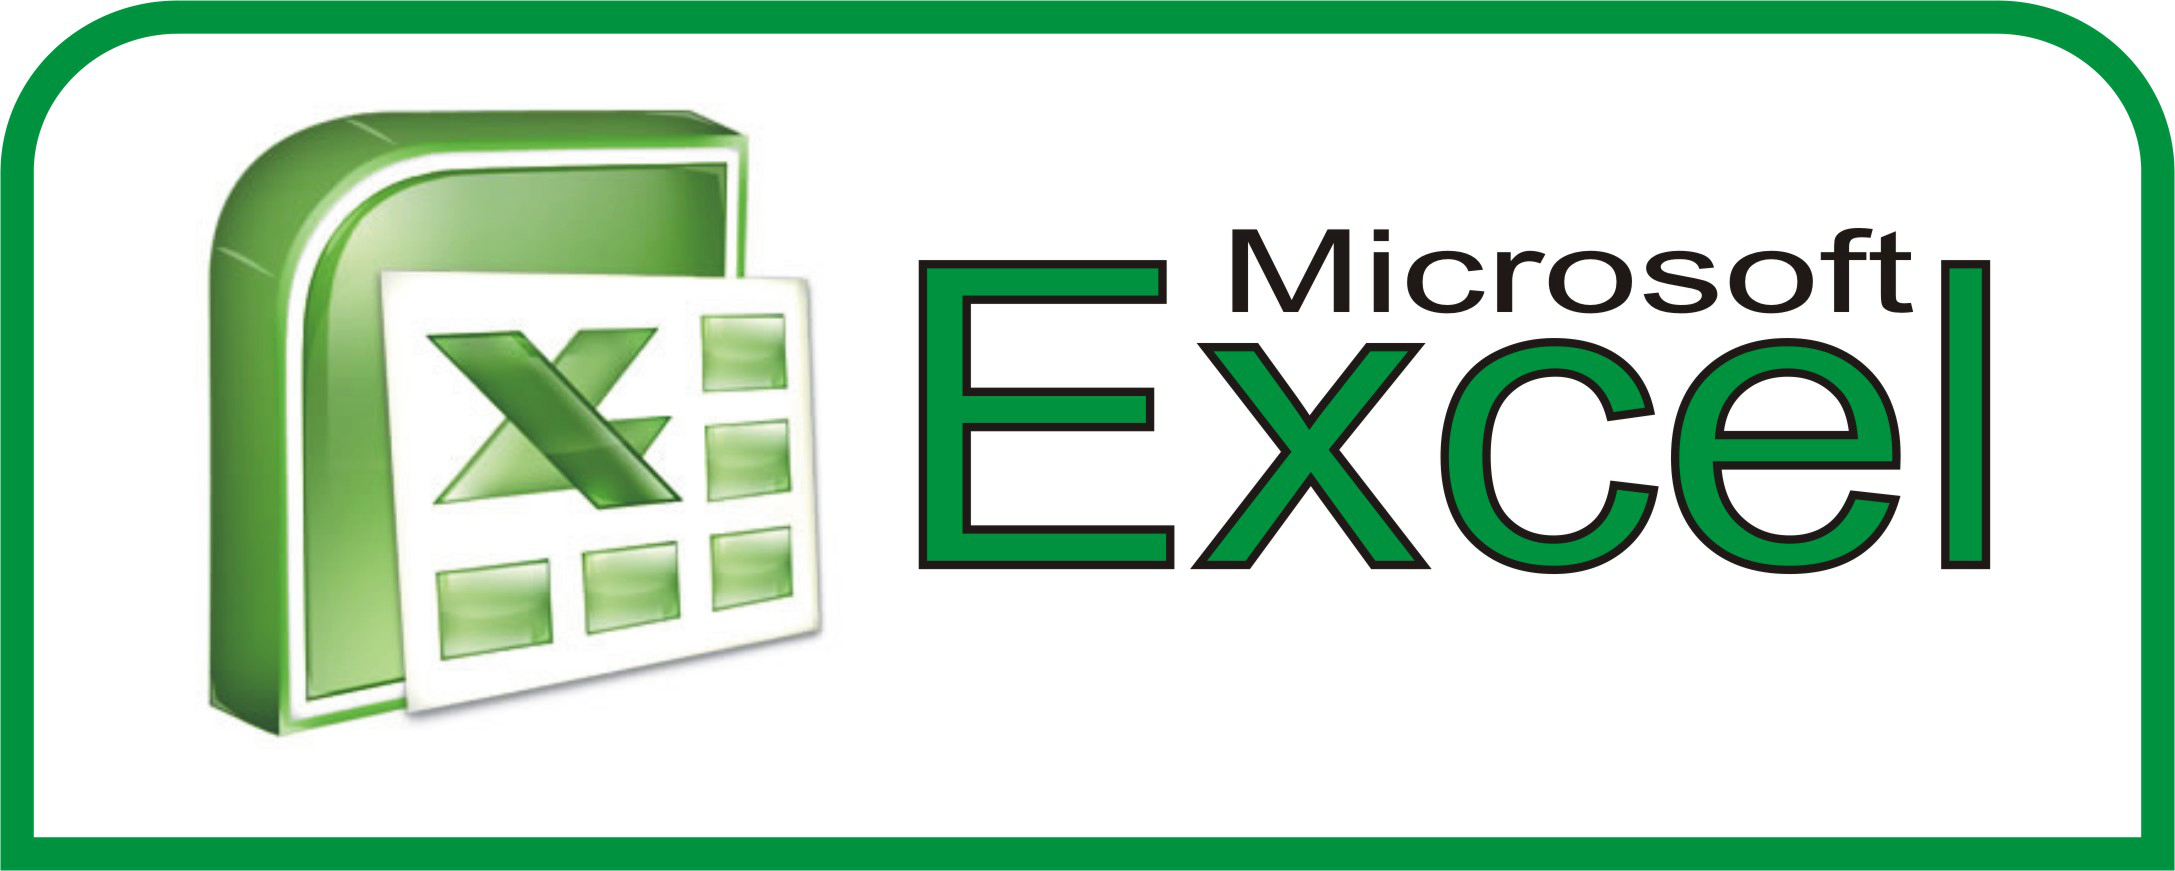 Ediblewildsus  Outstanding  Excel Shortcuts You Probably Didnt Know About  Techdissected With Exquisite Create Pull Down Menu In Excel Besides Center Across Selection Excel Furthermore Add Secondary Axis In Excel With Cute Excel Currency Conversion Also History Of Microsoft Excel In Addition Excel  Apps And Display Formulas Excel As Well As Excel Test Interview Additionally Dynamic Filter Excel From Techdissectedcom With Ediblewildsus  Exquisite  Excel Shortcuts You Probably Didnt Know About  Techdissected With Cute Create Pull Down Menu In Excel Besides Center Across Selection Excel Furthermore Add Secondary Axis In Excel And Outstanding Excel Currency Conversion Also History Of Microsoft Excel In Addition Excel  Apps From Techdissectedcom